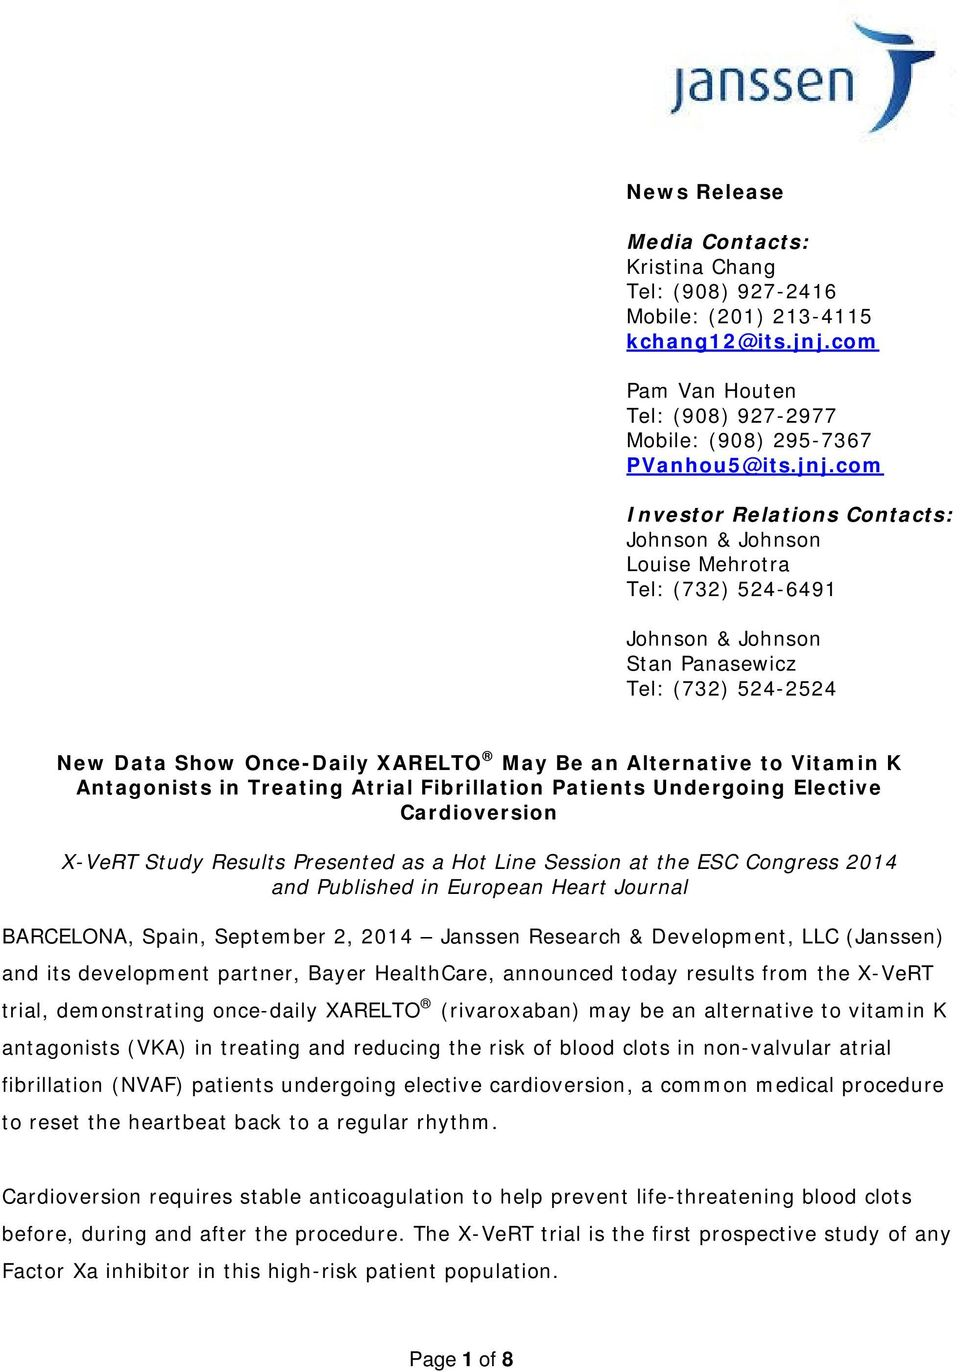 com Investor Relations Contacts: Johnson & Johnson Louise Mehrotra Tel: (732) 524-6491 Johnson & Johnson Stan Panasewicz Tel: (732) 524-2524 New Data Show Once-Daily XARELTO May Be an Alternative to